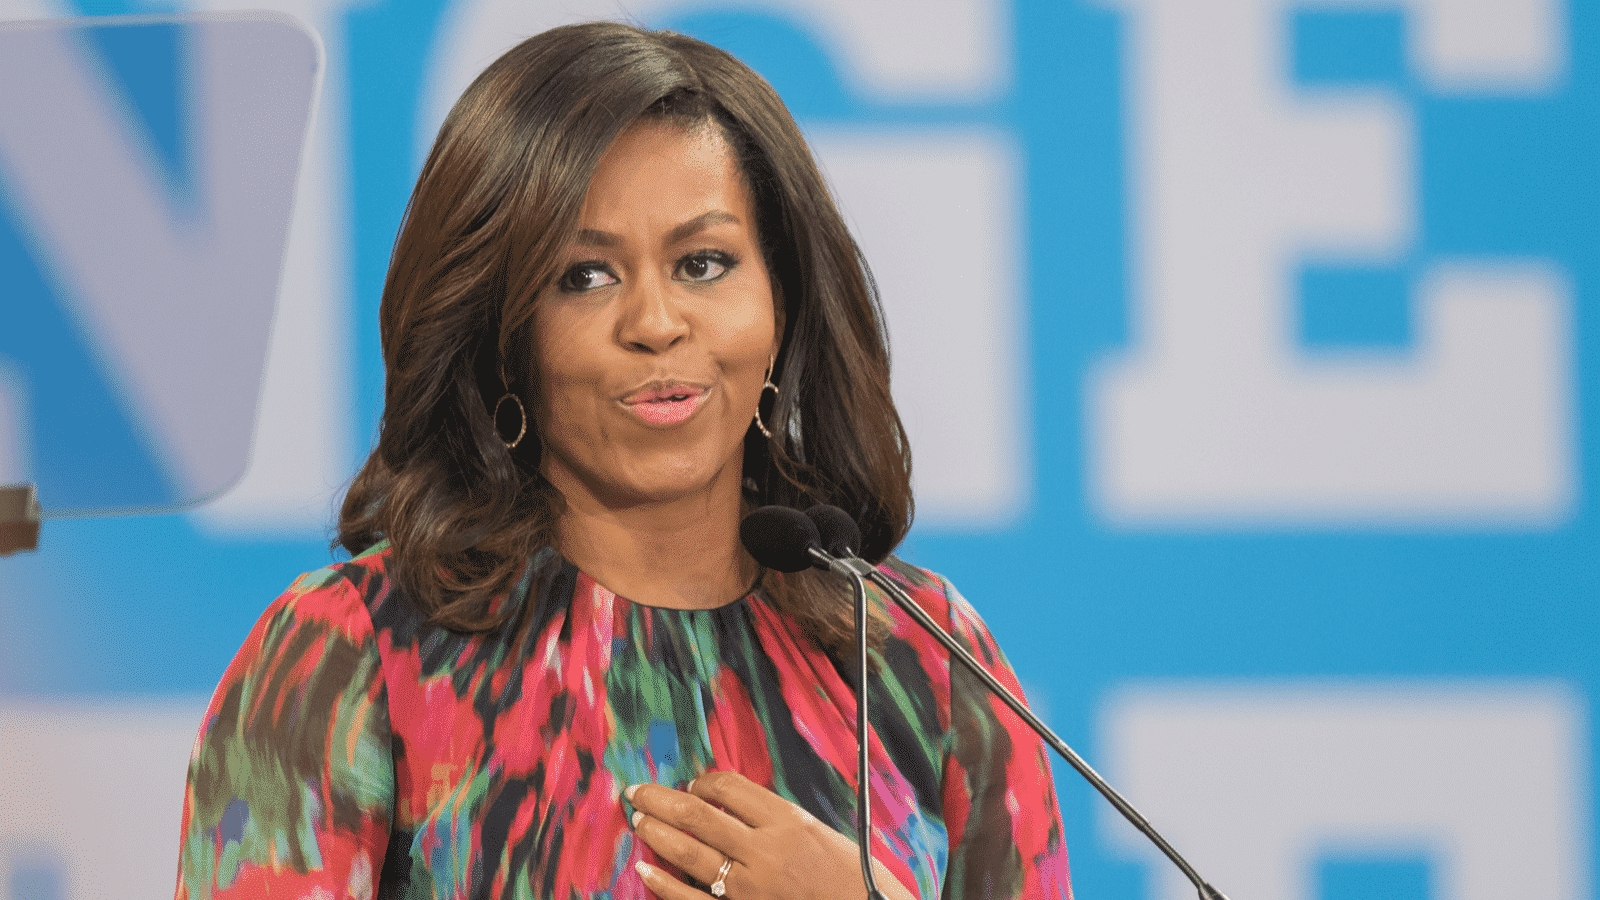 Michelle Obama, Michelle Obama Expands Book Tour Sells 3 Million Copies of 'Becoming'